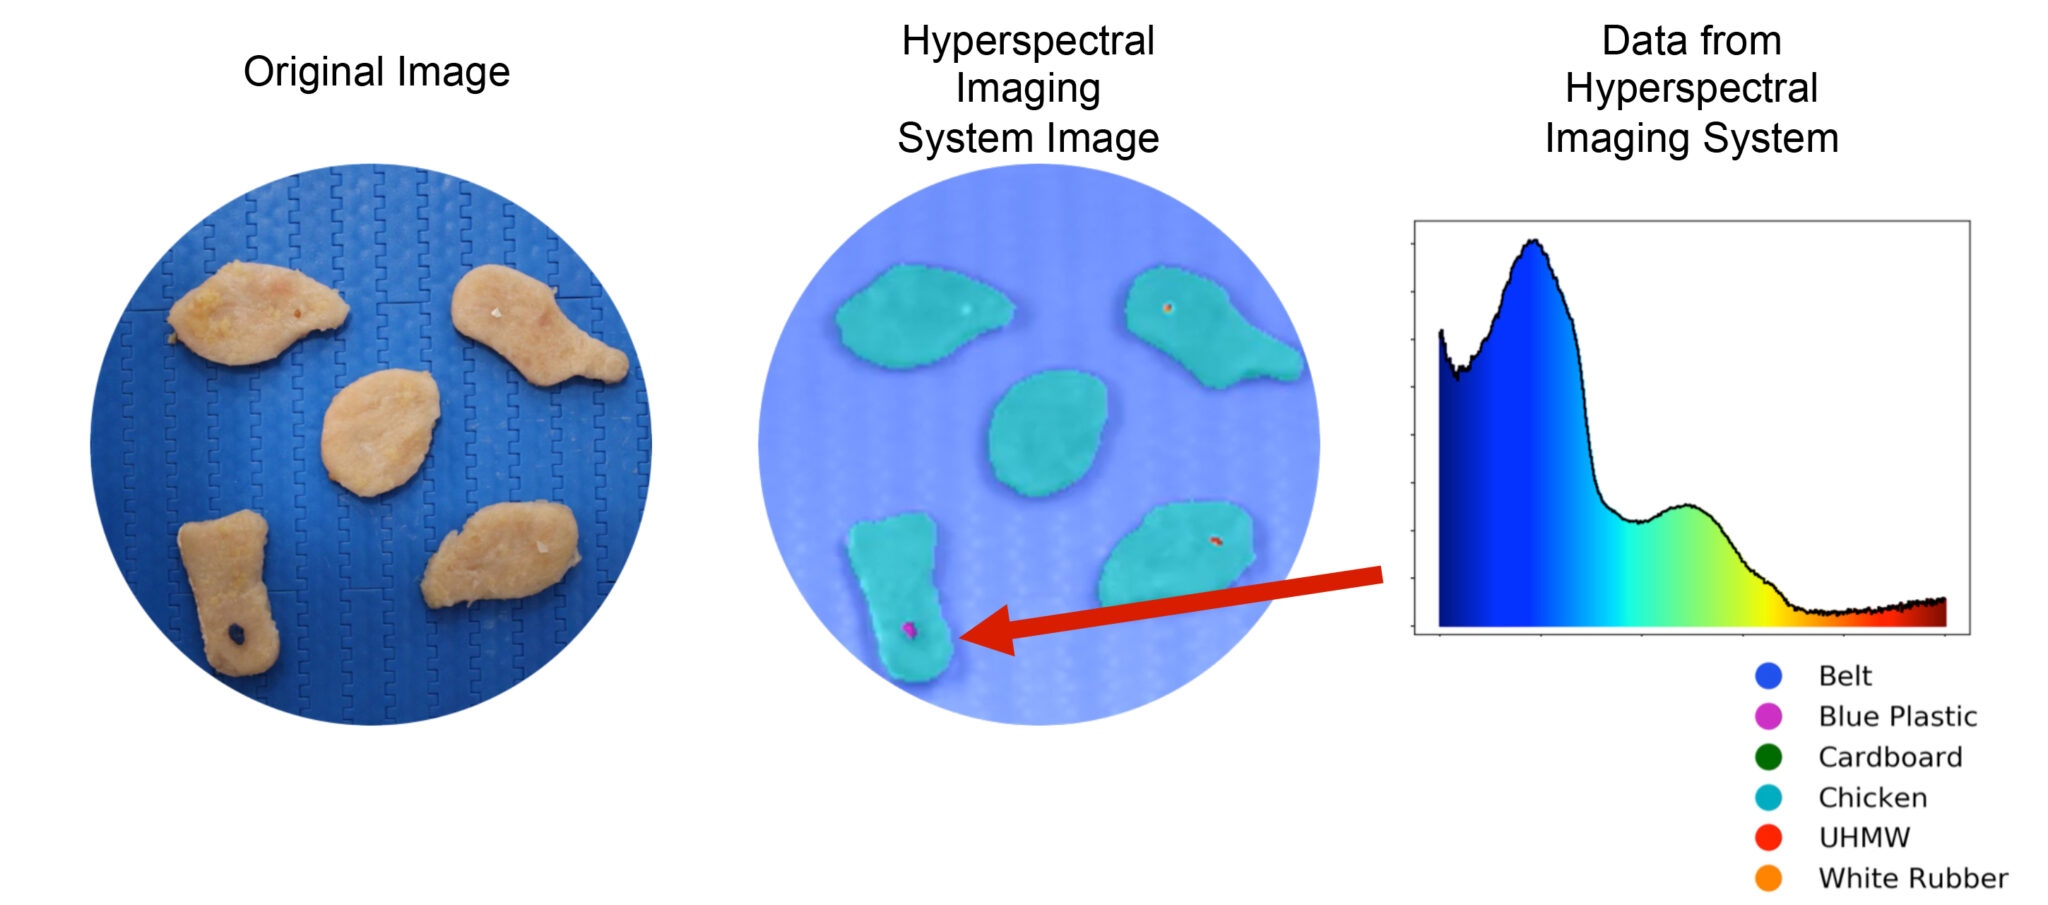 Foreign material detection on chicken nuggets using hyperspectral imaging